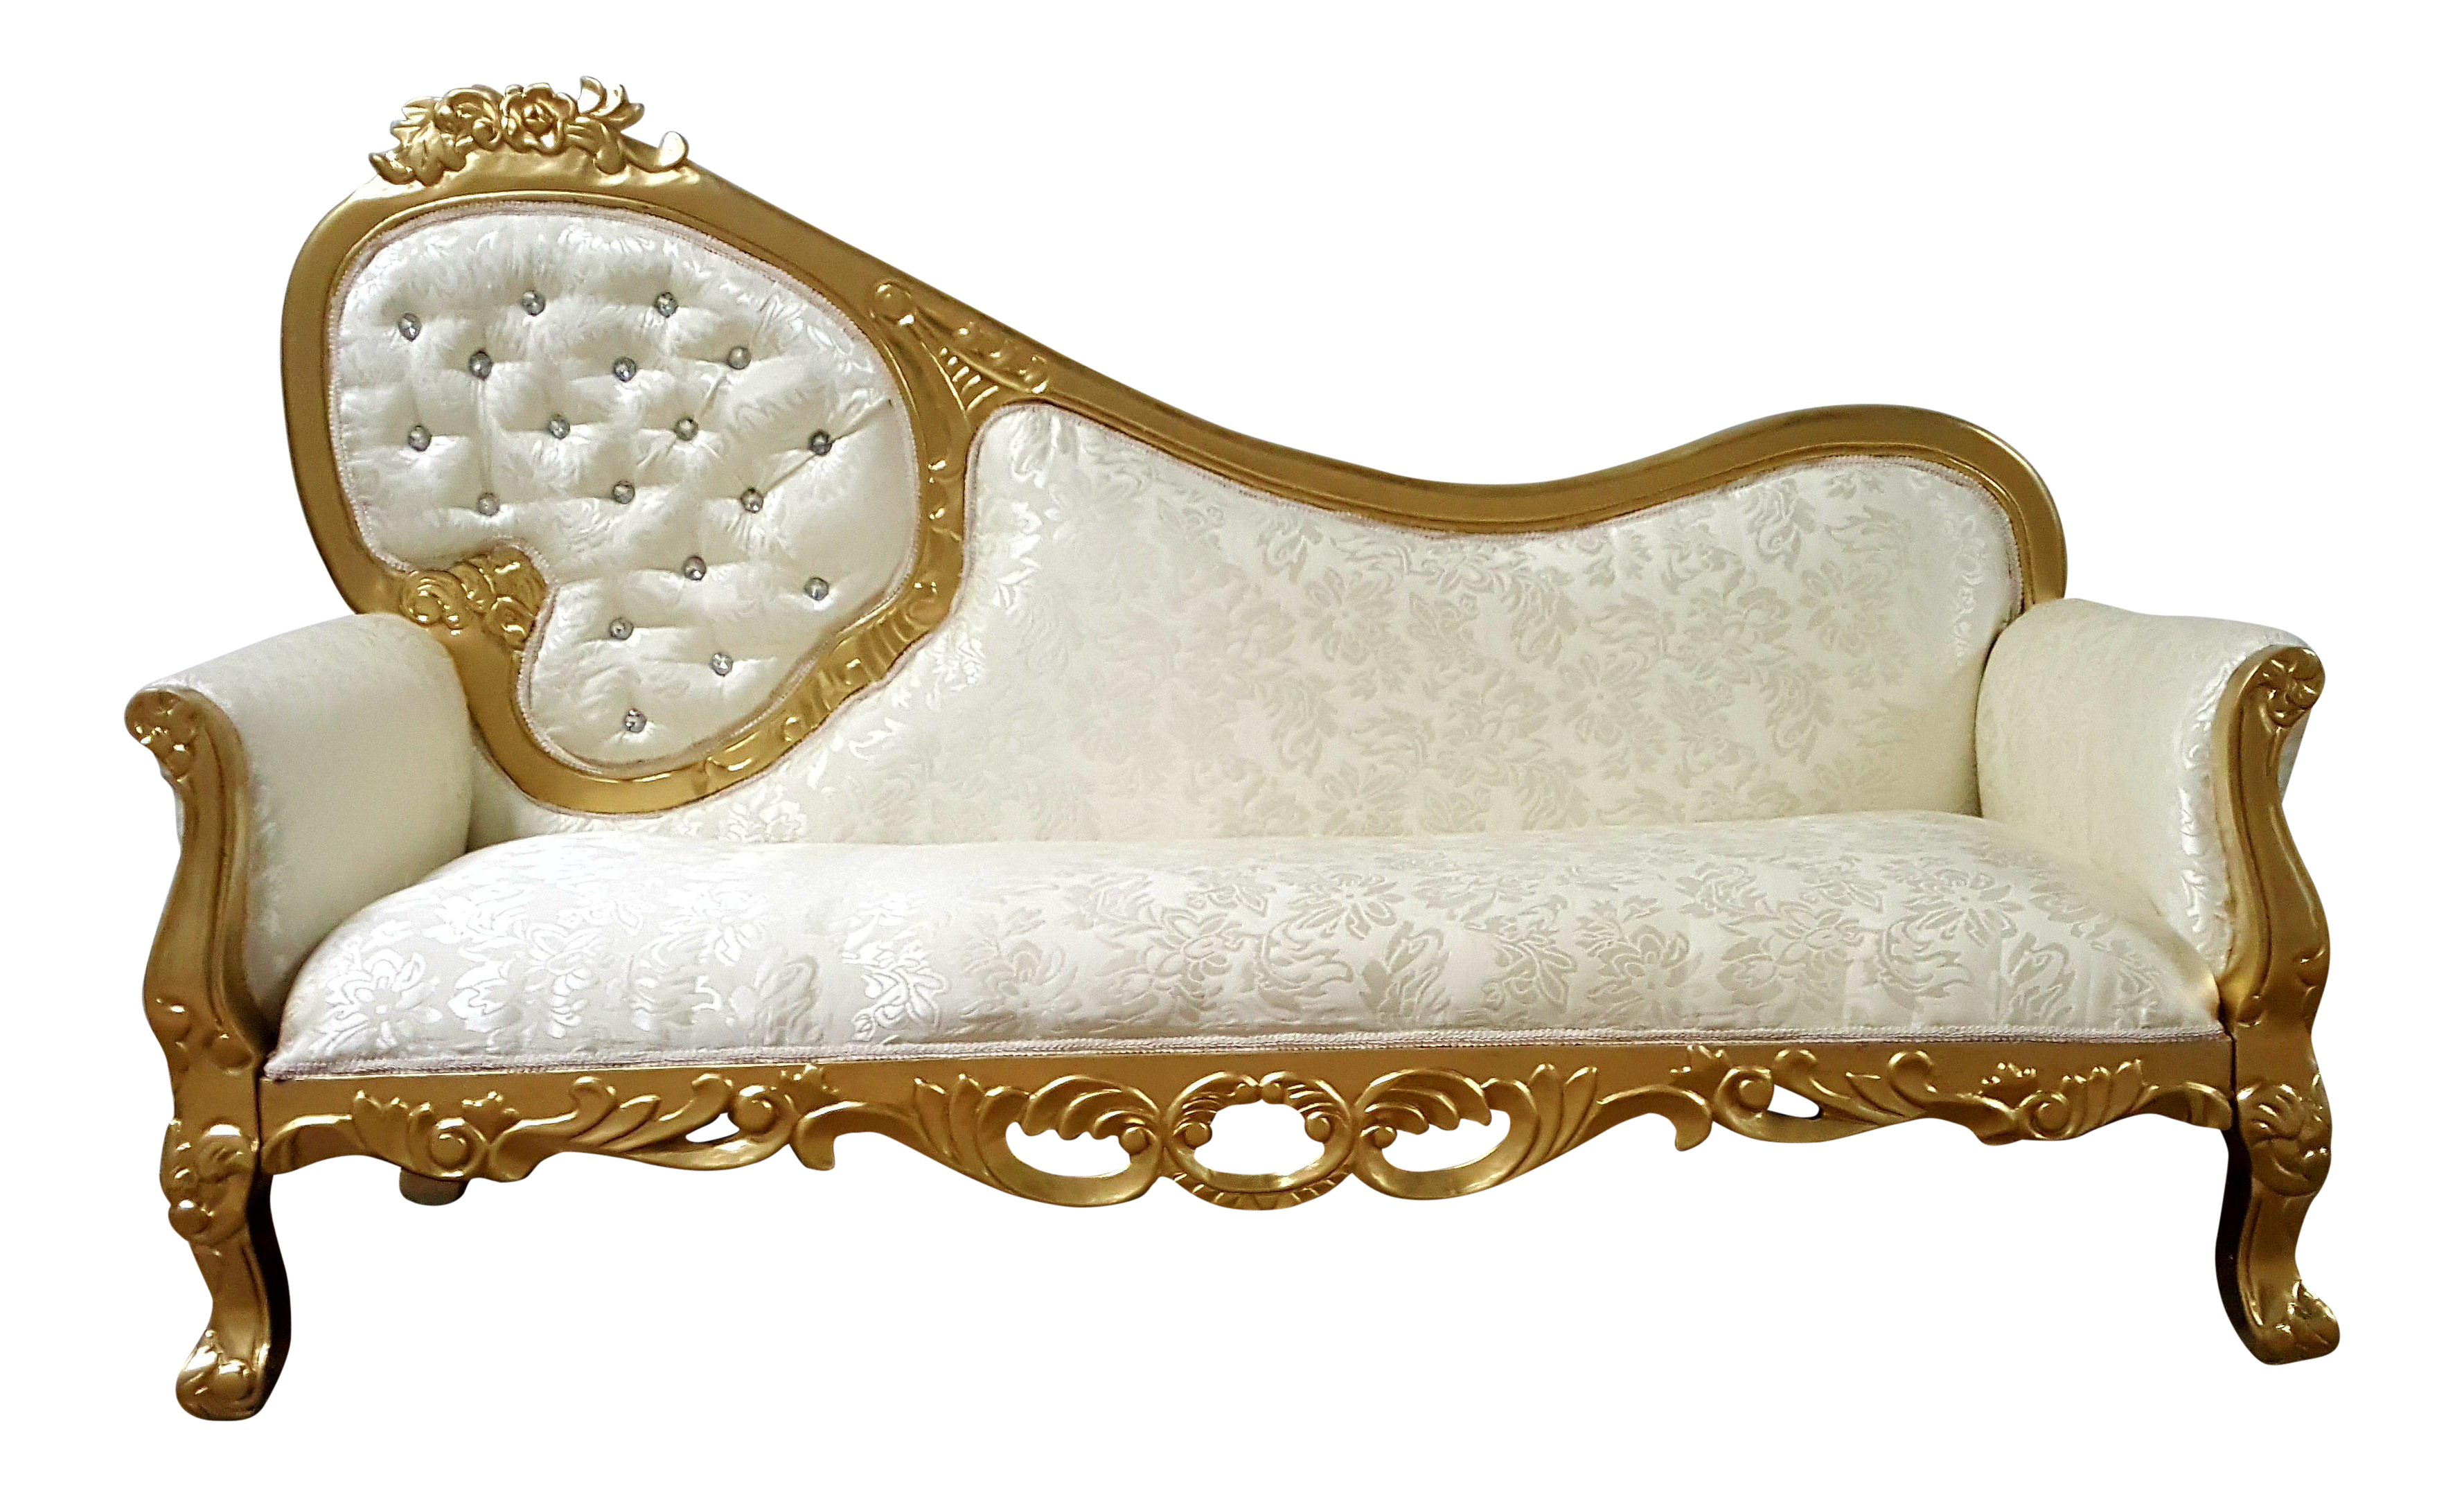 Vintage Gold & Ivory Tufted Chaise Lounge Sofa